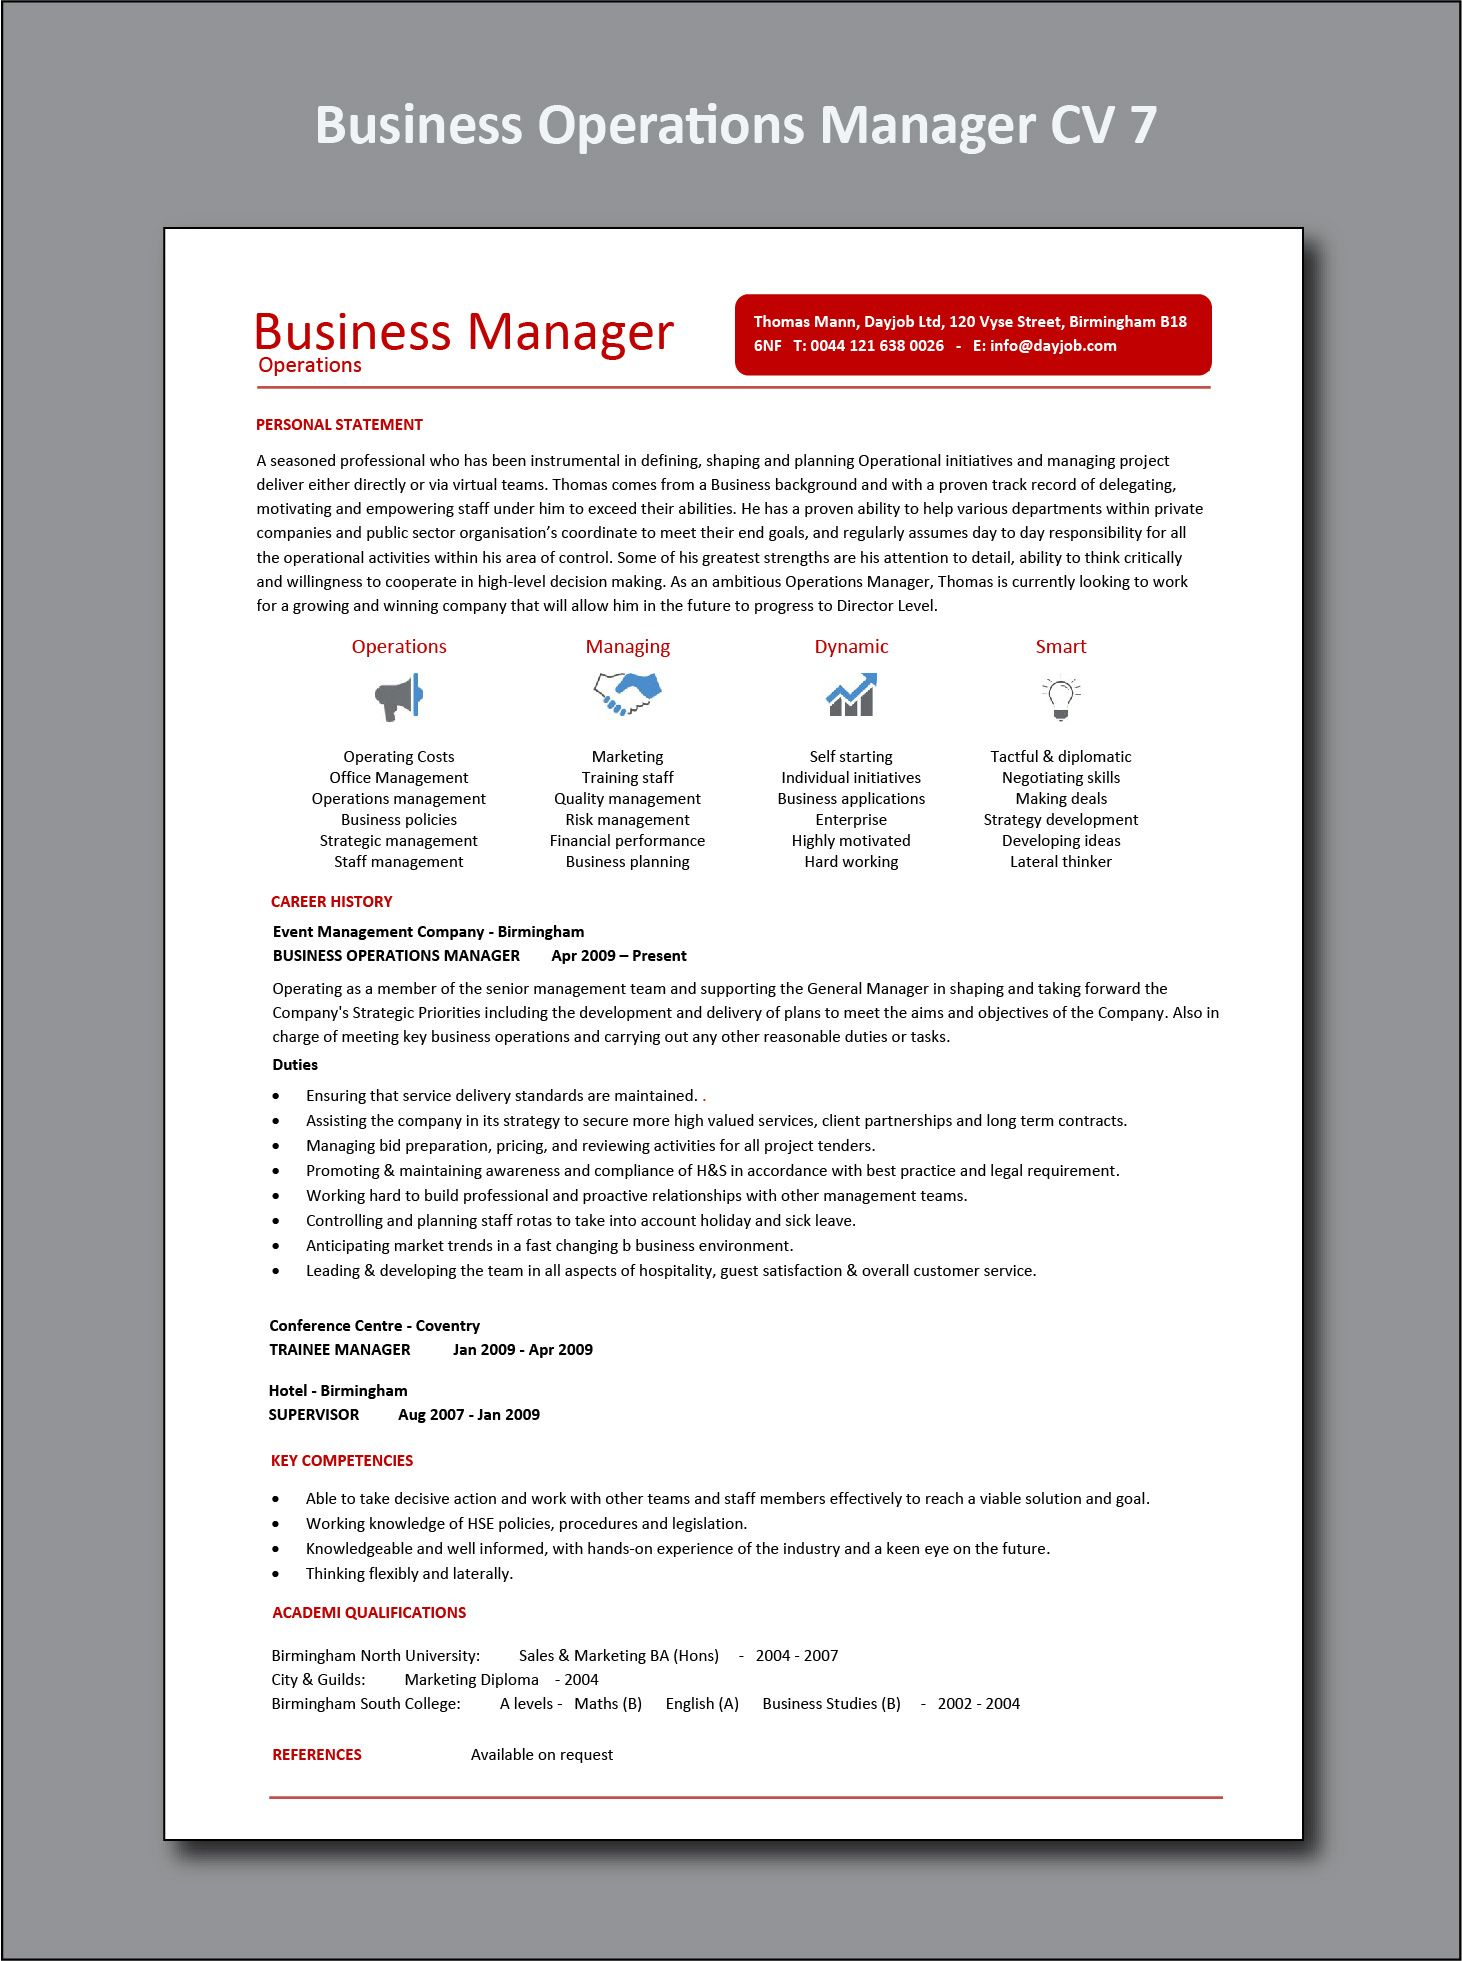 Business Operations Manager CV 7 example, project, PDF